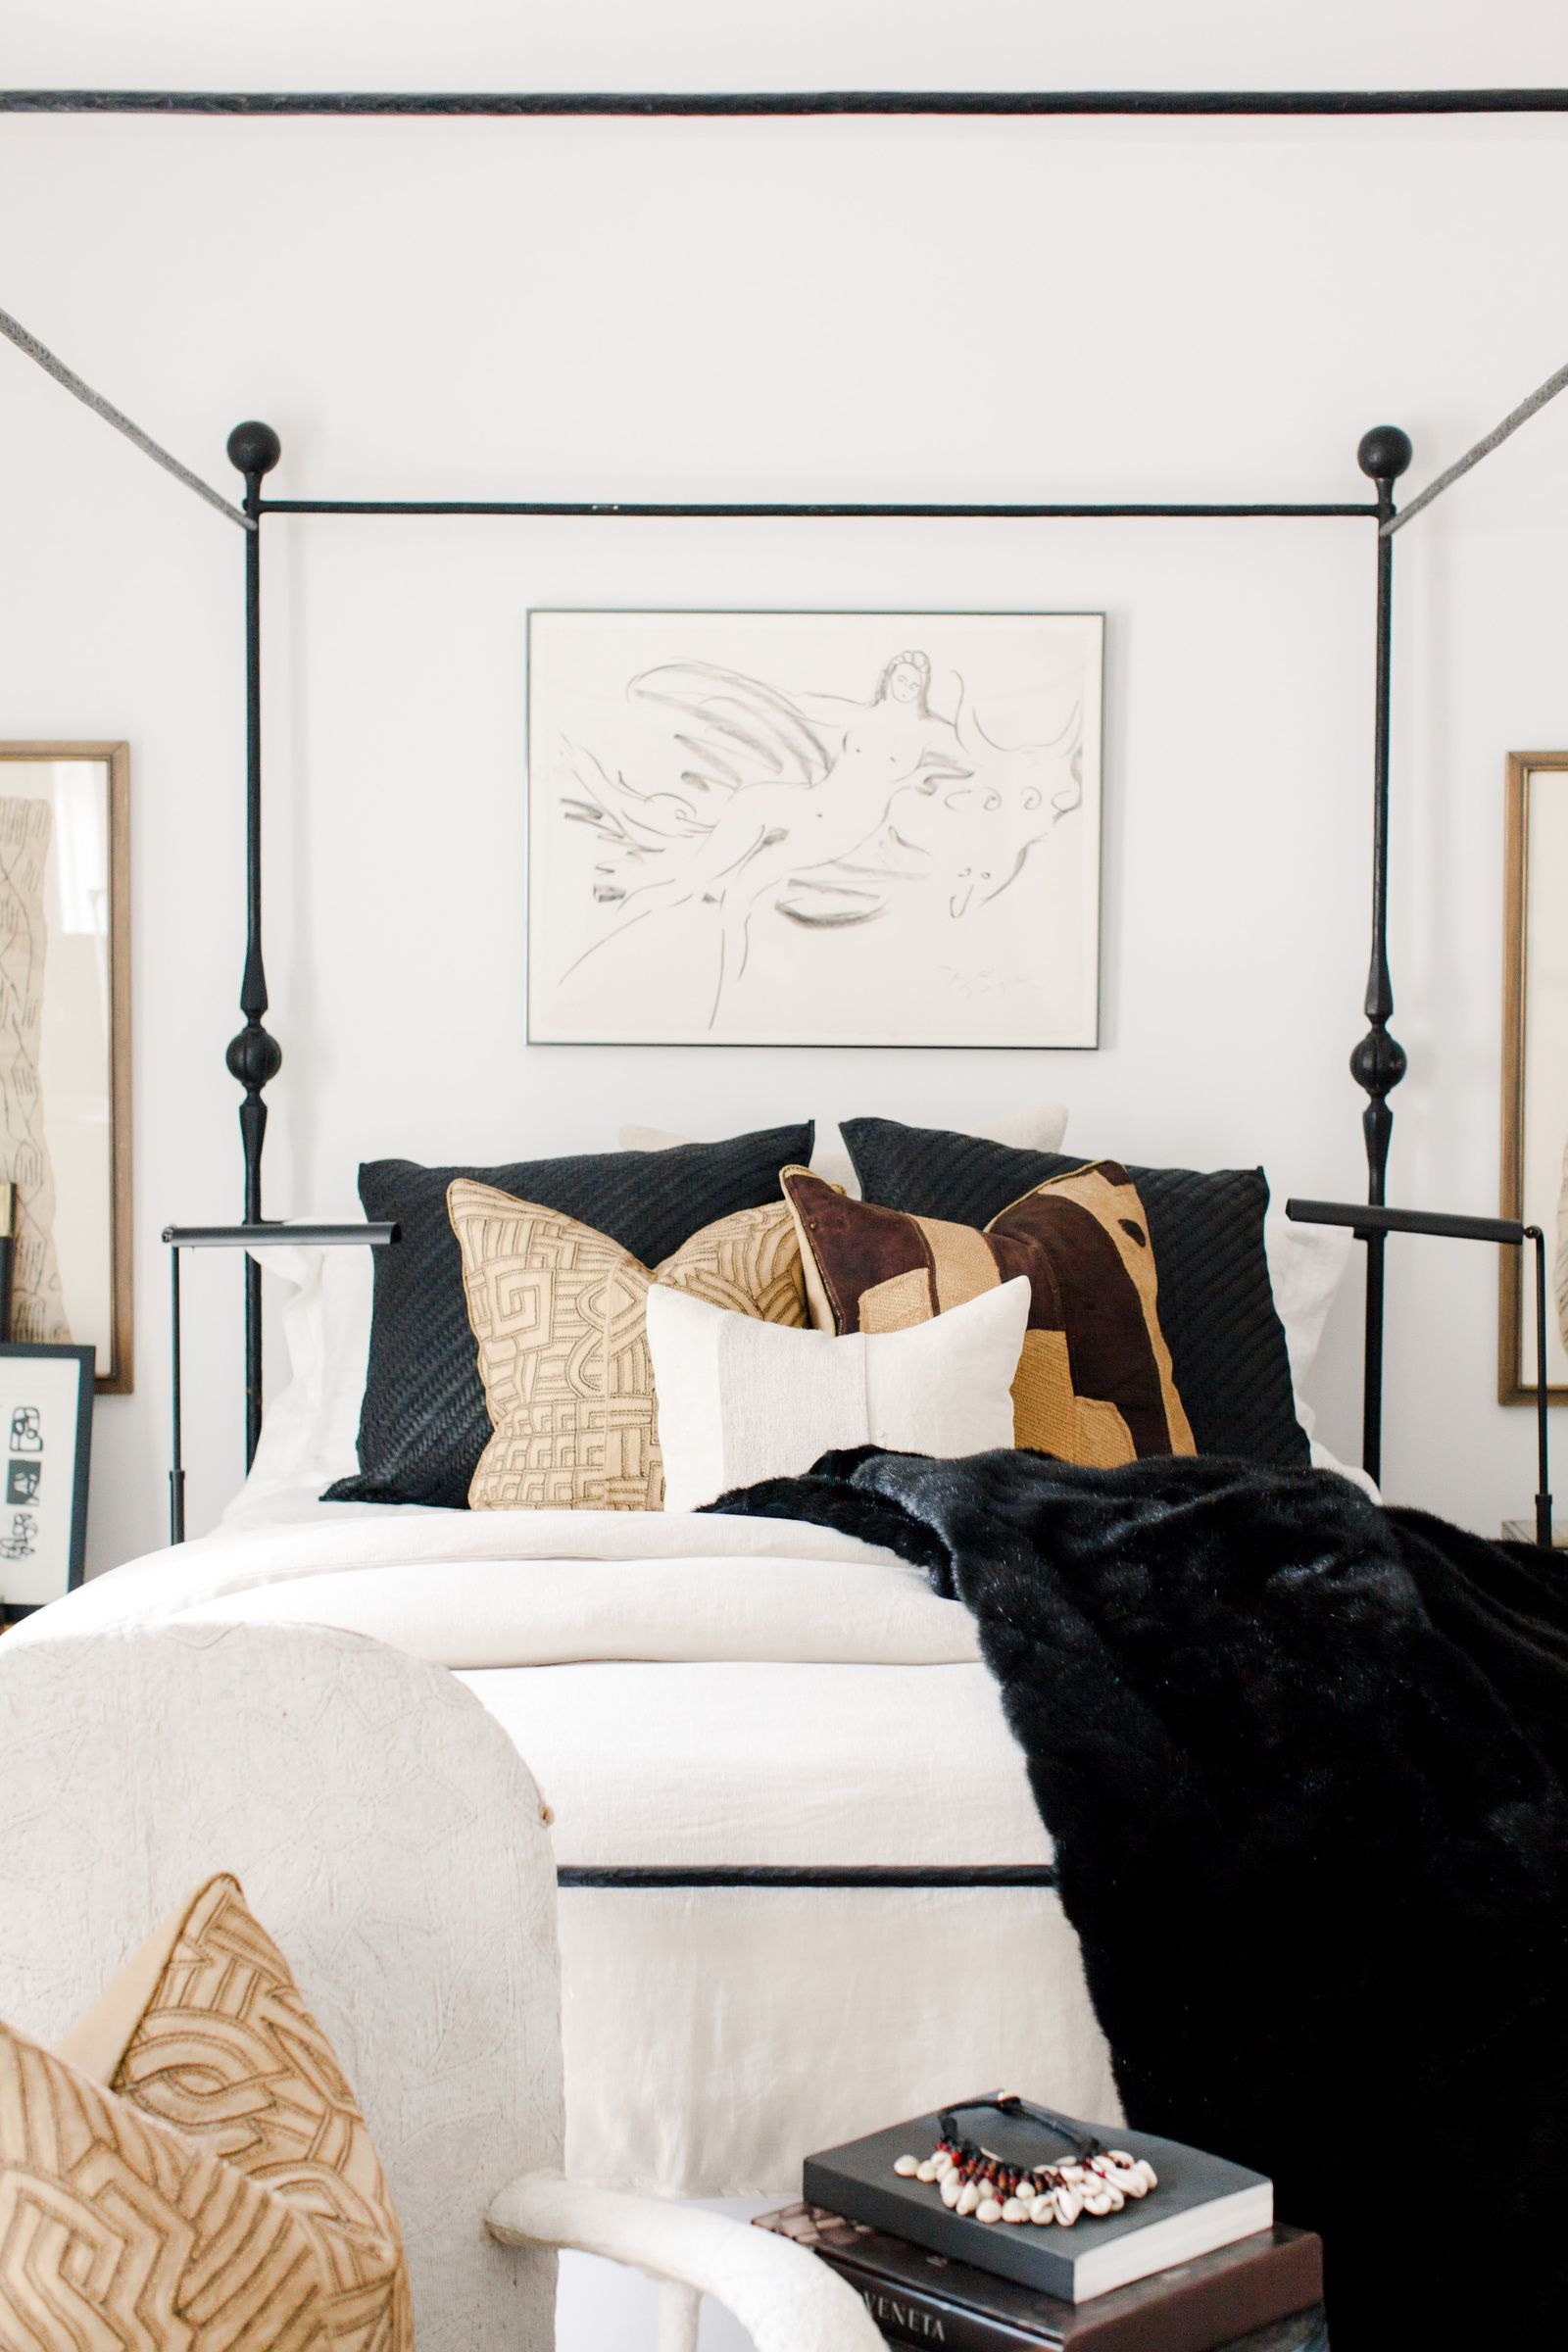 ali harper photography interiors bedrooms we love in 2019 rh pinterest com